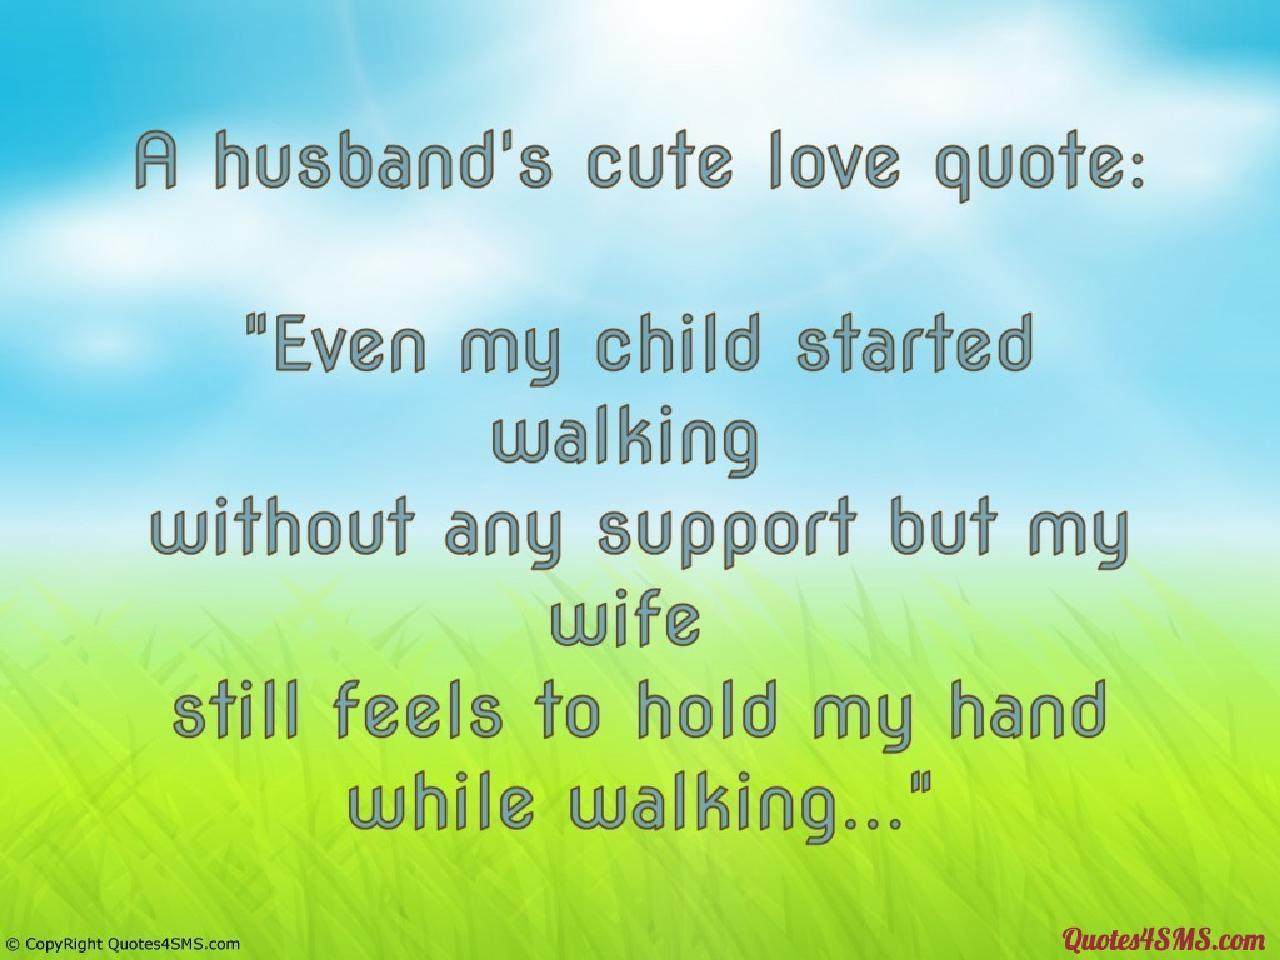 Love Wallpapers For Hubby : I Love My Husband Wallpapers - Wallpaper cave